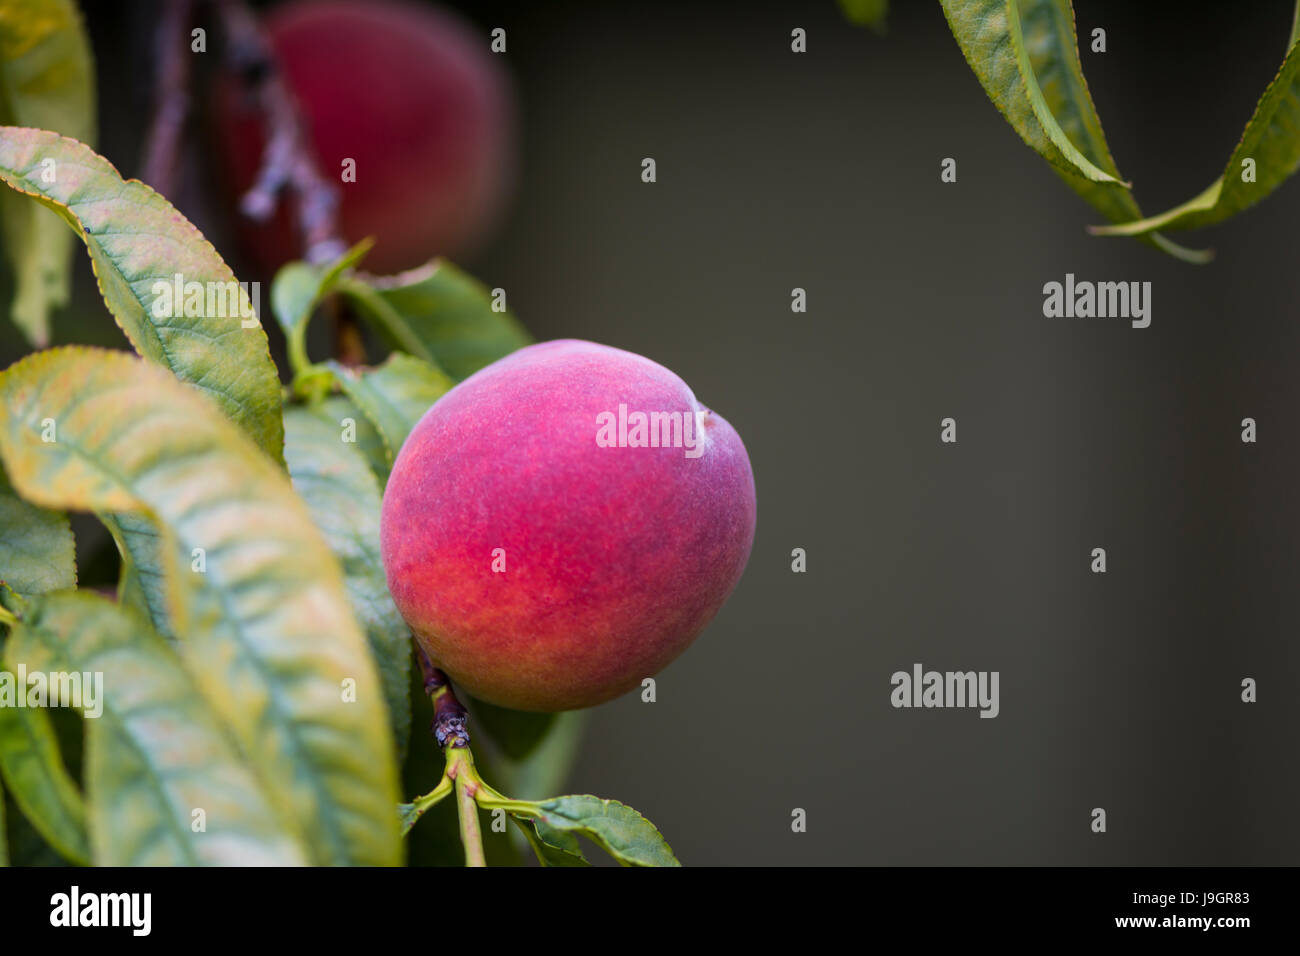 Peaches in a peach tree with very shallow focus on the primary piece of fruit. - Stock Image